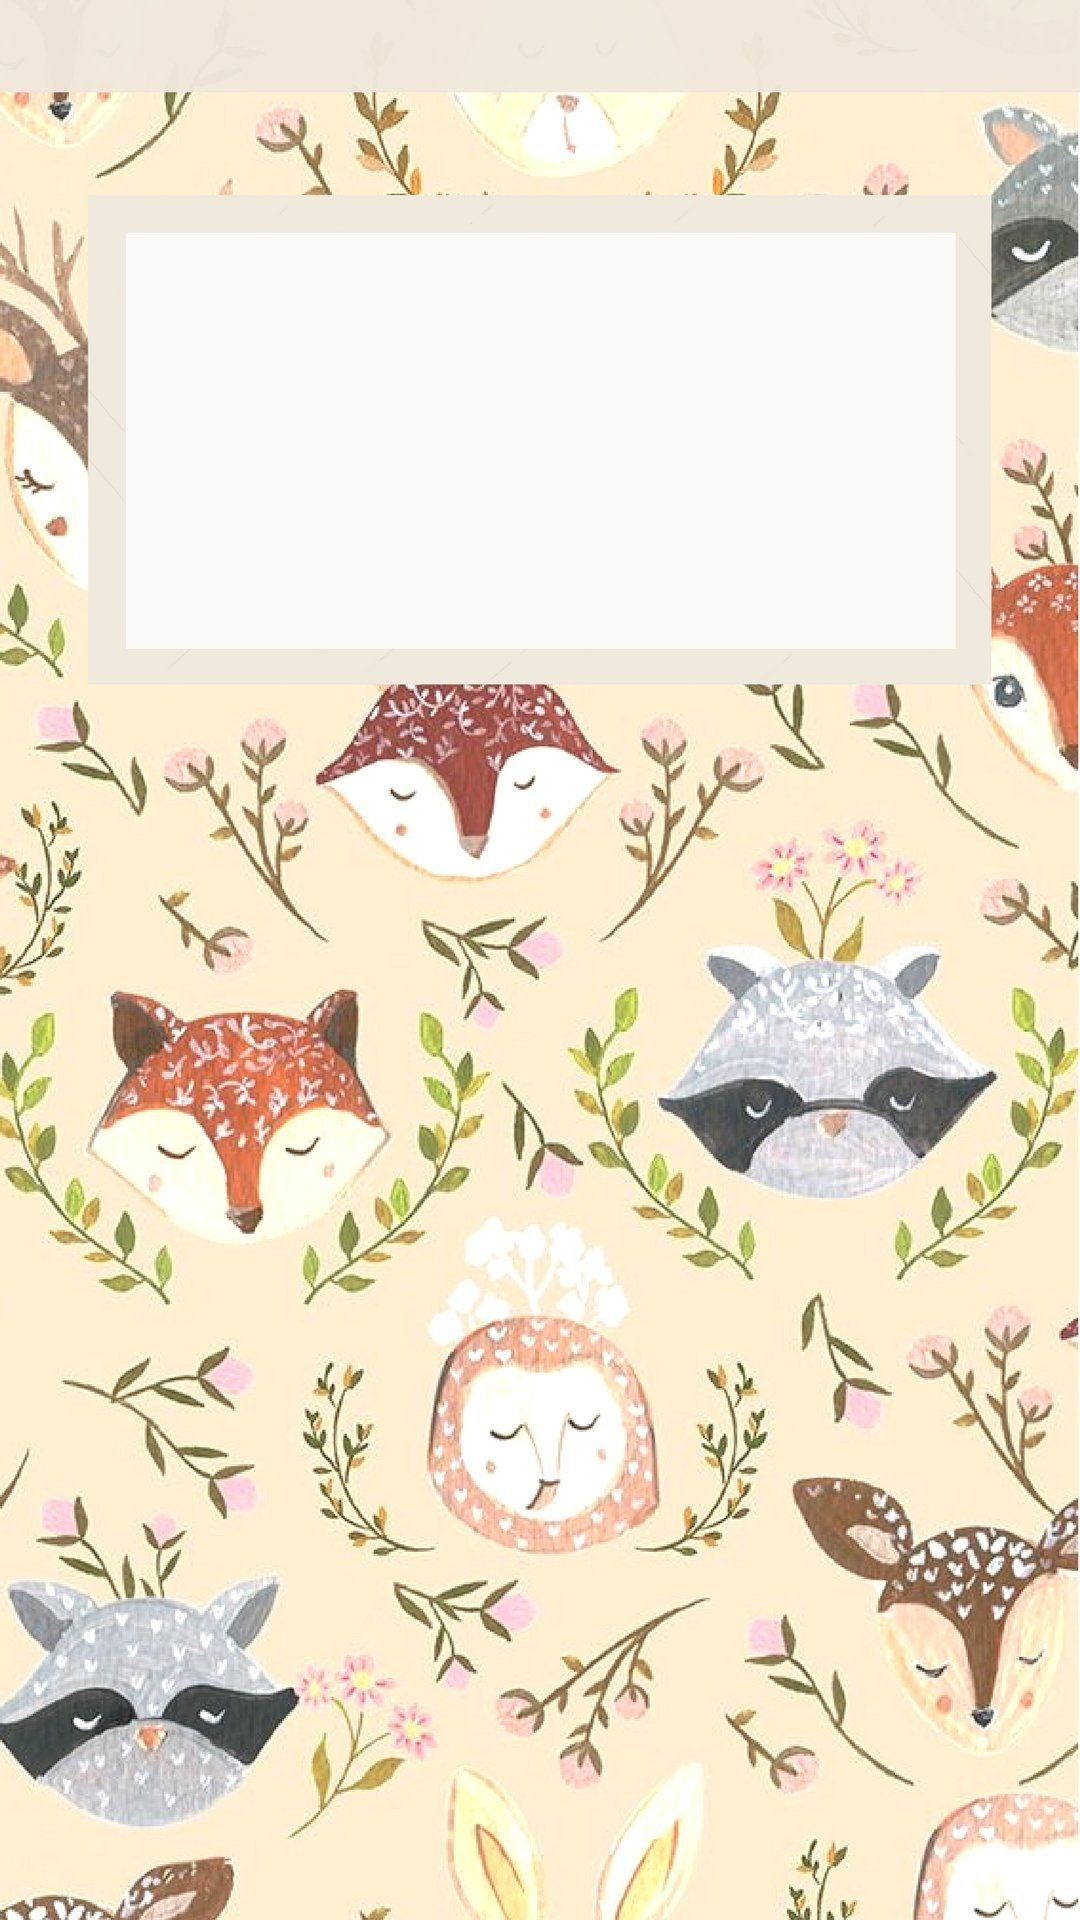 Cute Vintage iPhone Wallpapers - Wallpaper Cave